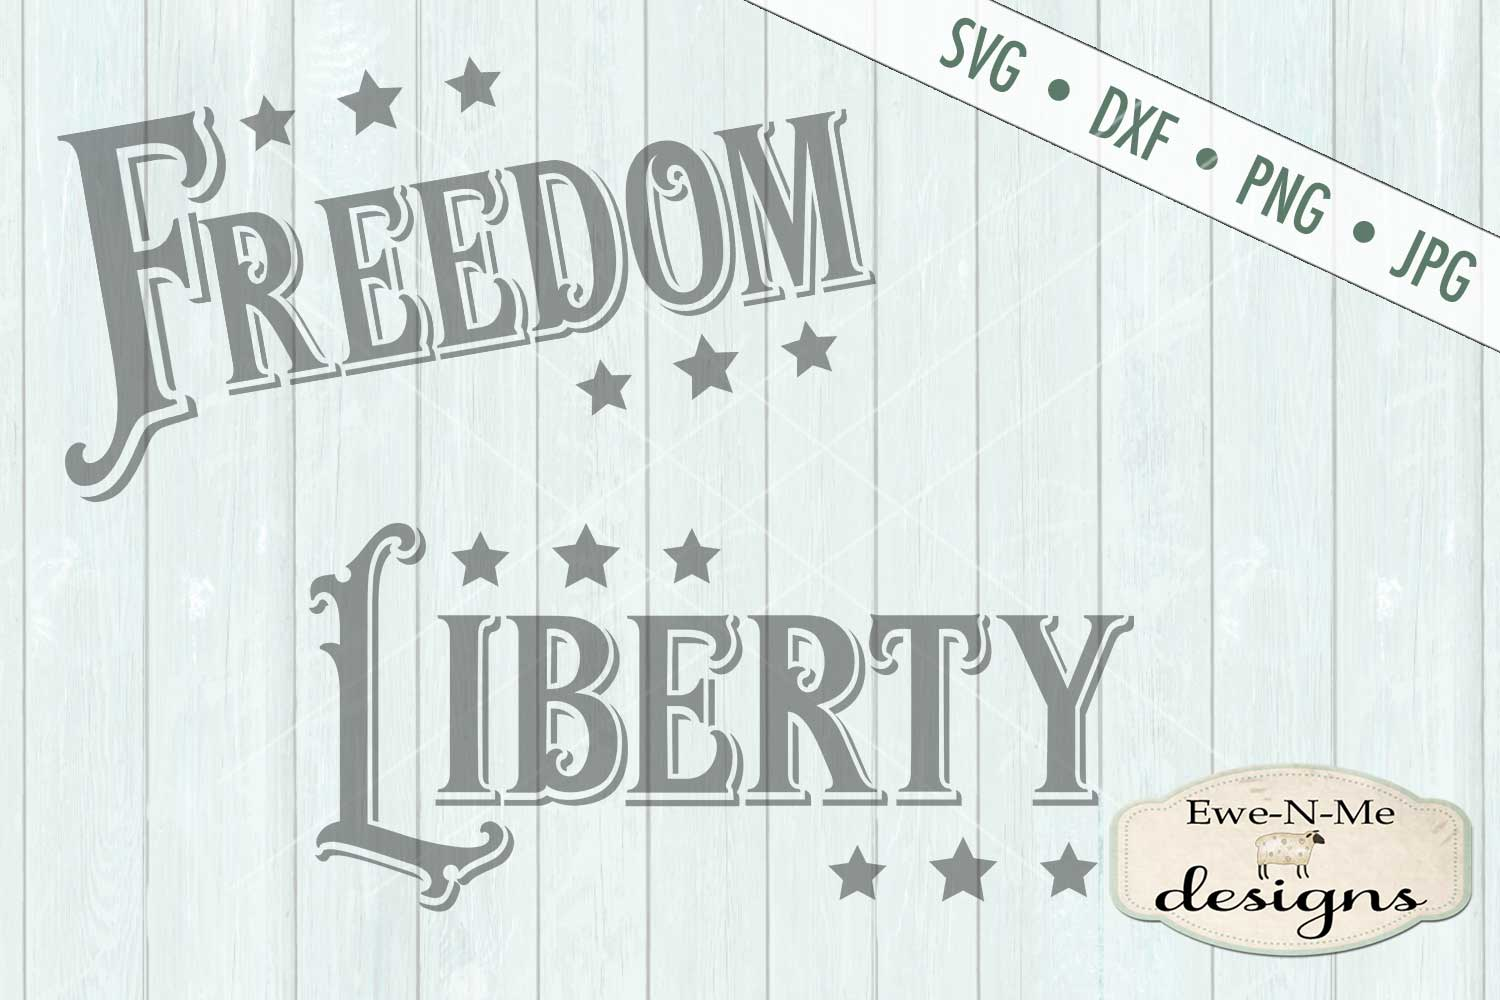 Freedom Liberty - Patriotic - 4th of July - SVG DXF Files example image 2